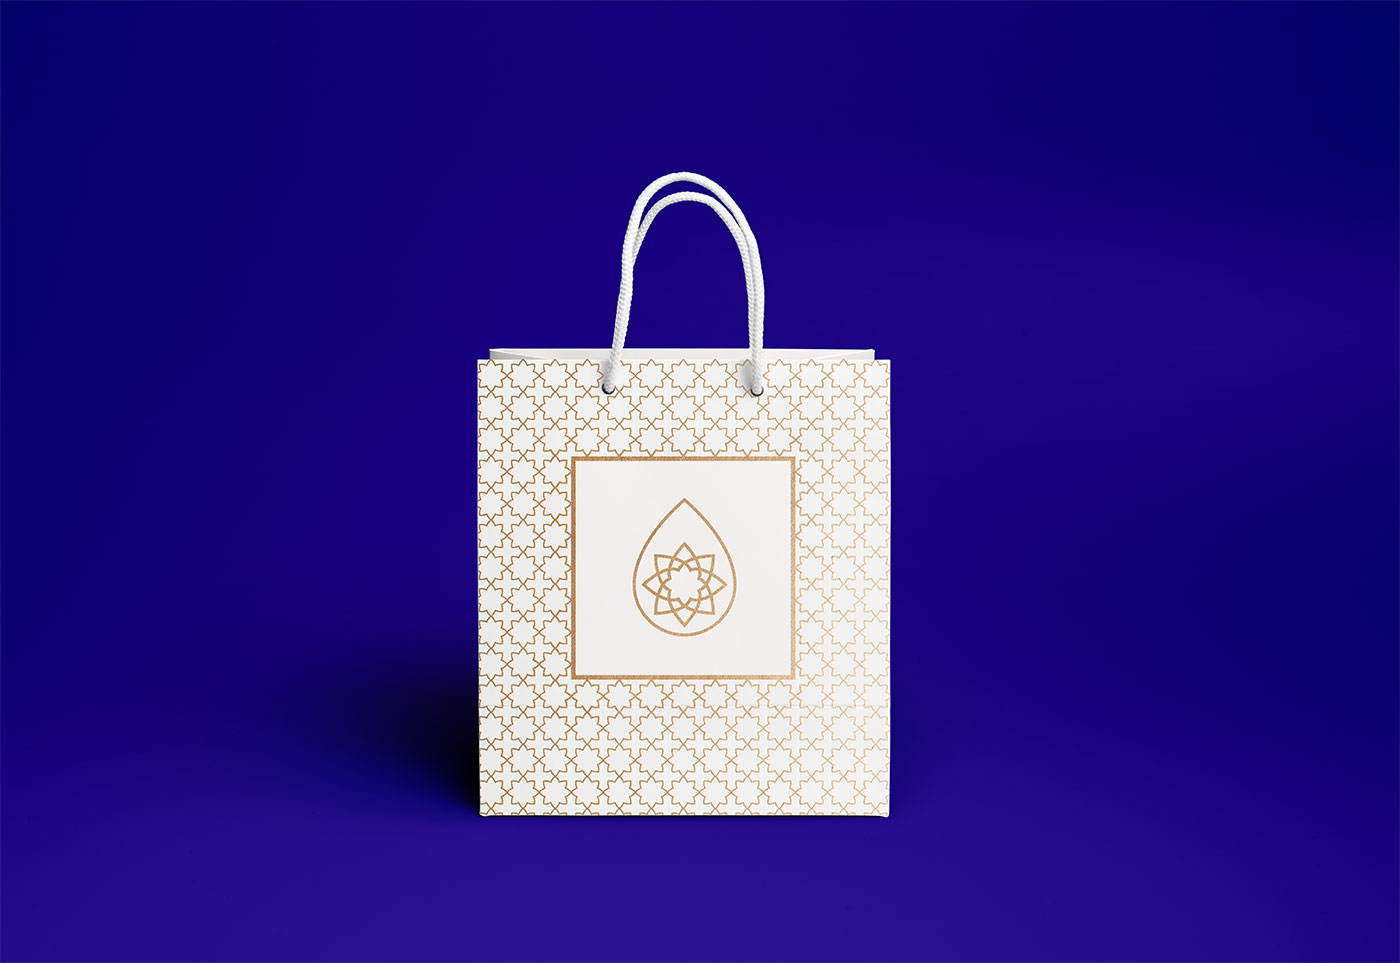 Outfit Branding & Design Sol Water Bag